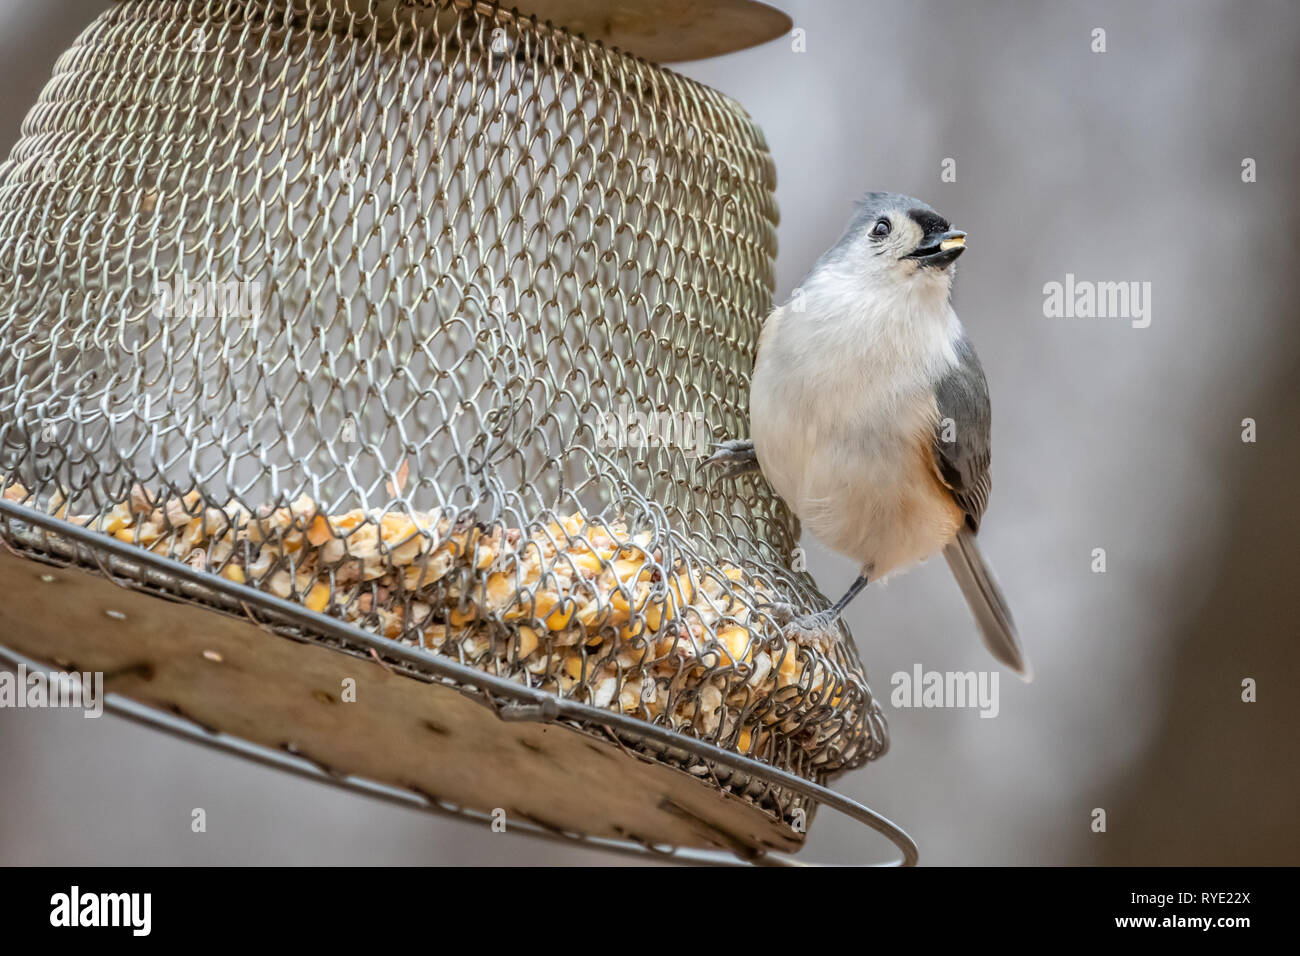 Carolina Chickadee (Poecile carolinensis) at a feeder - Stock Image